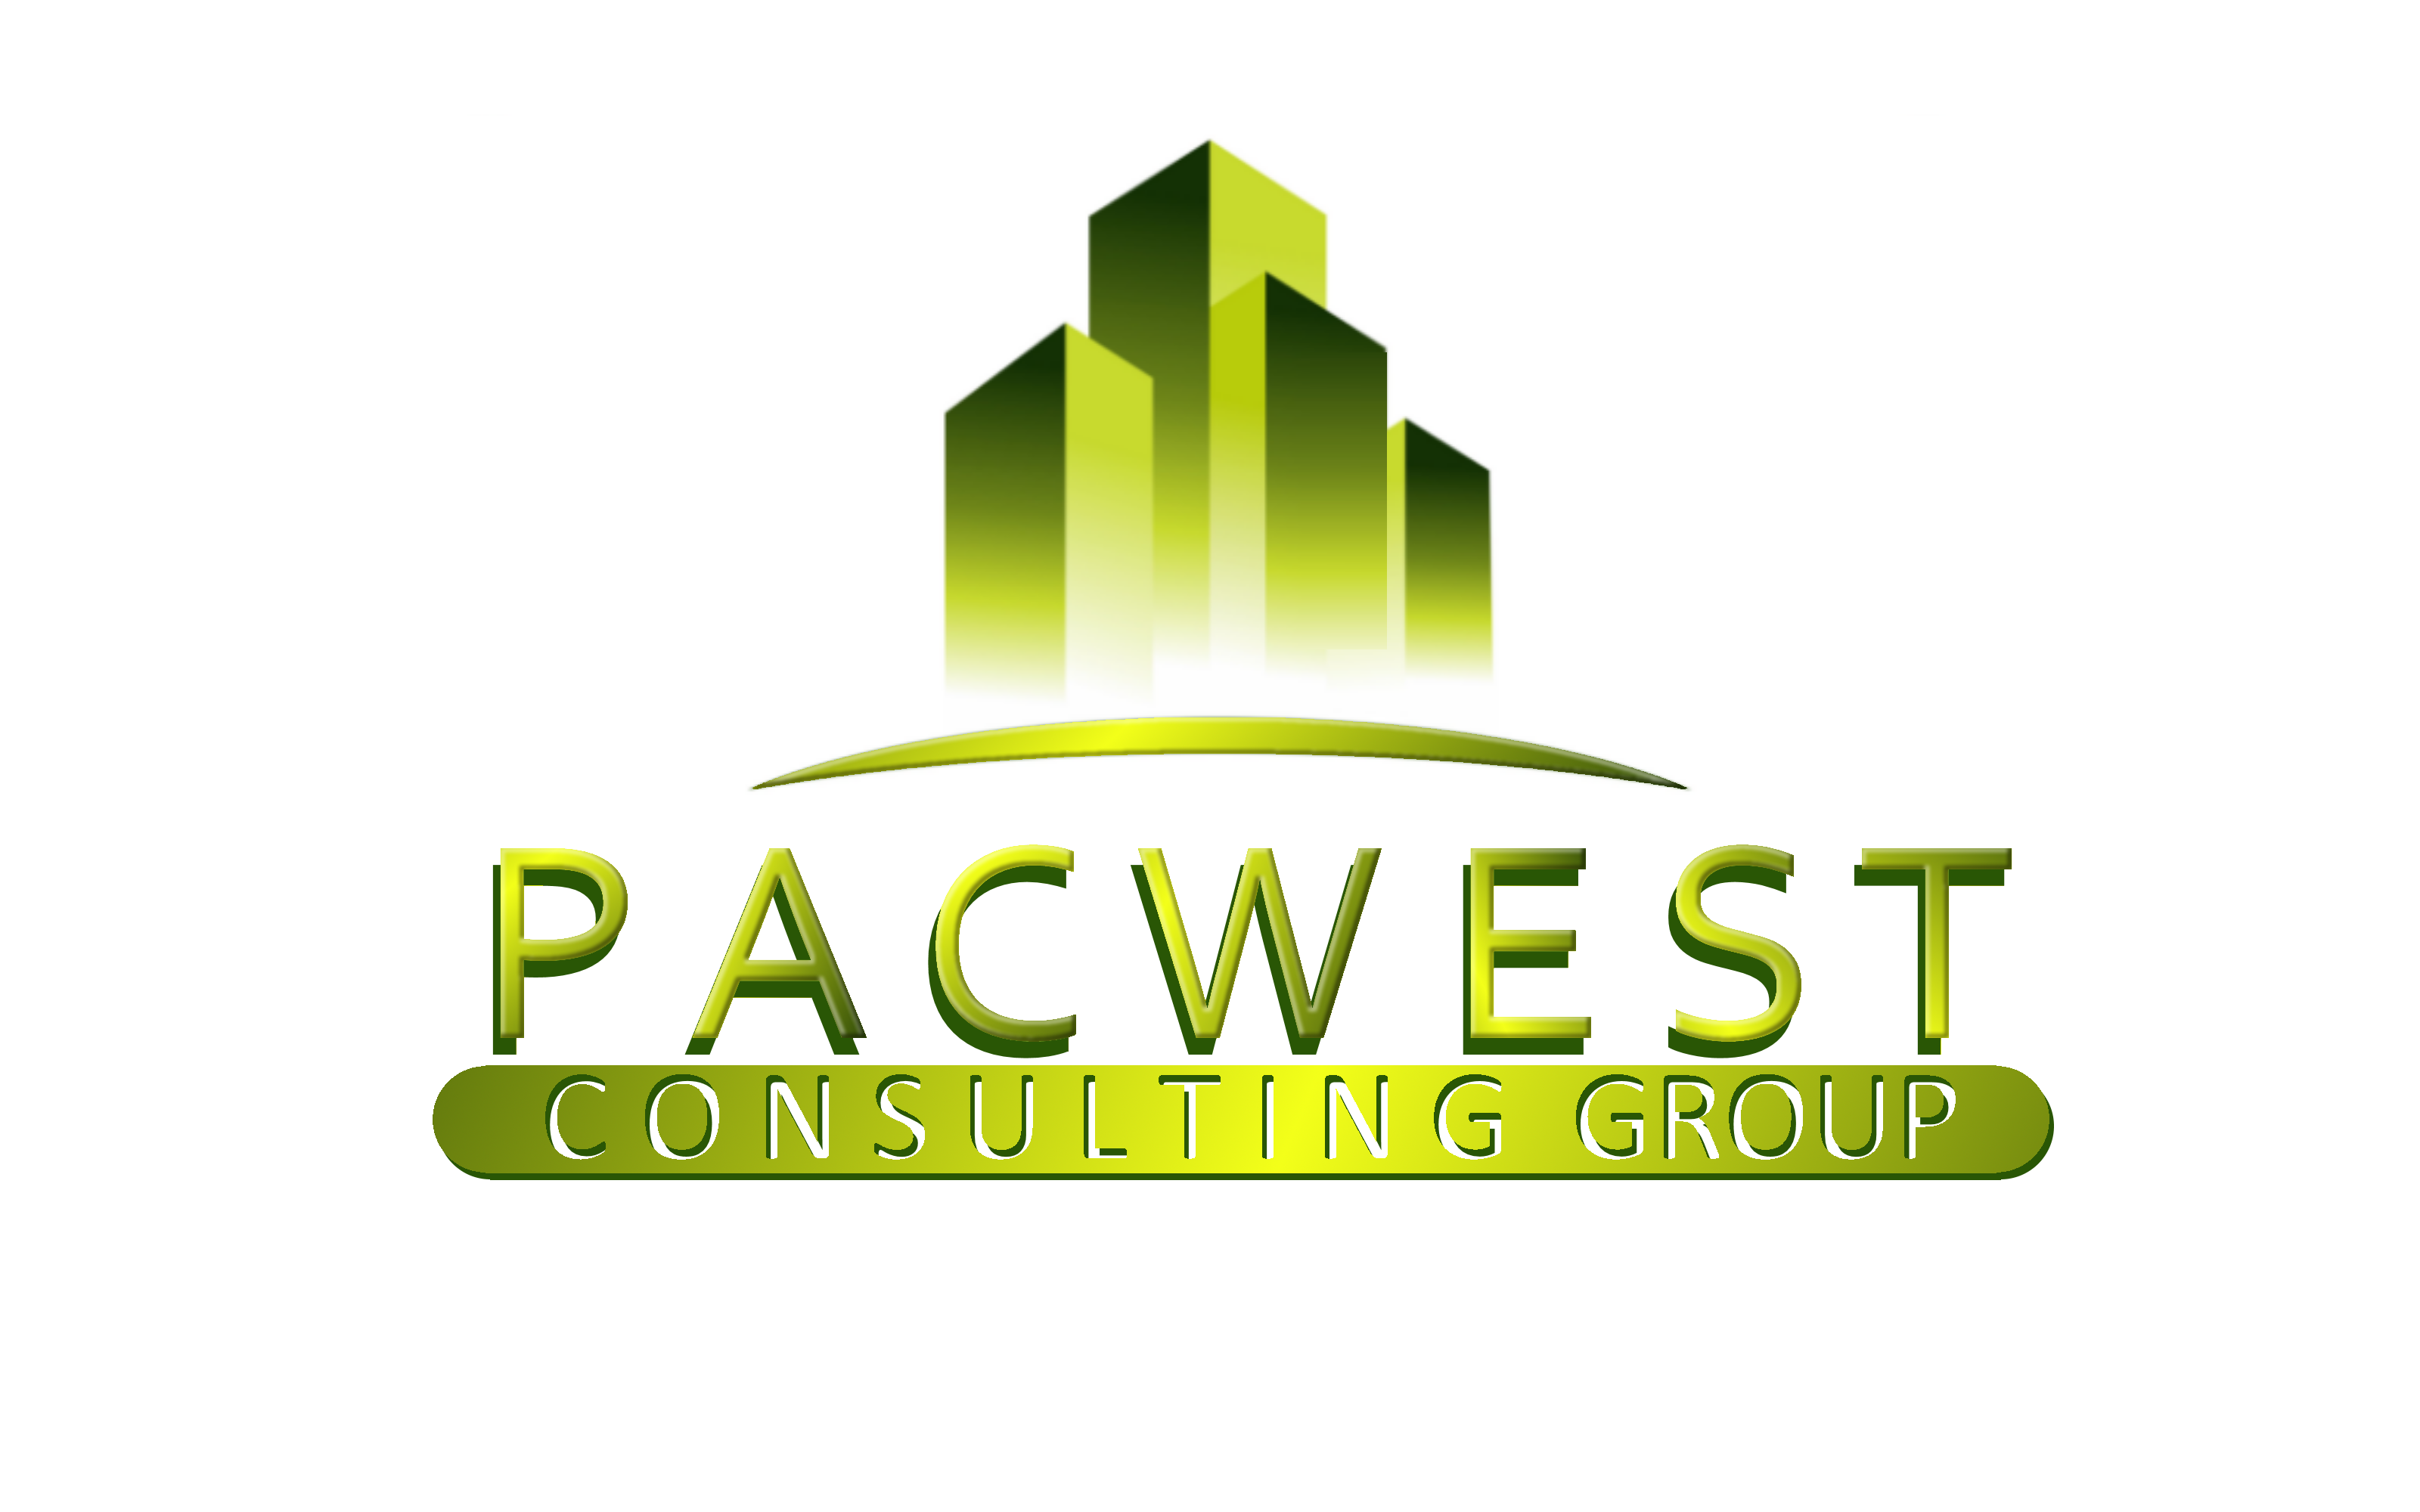 Logo Design by Roberto Bassi - Entry No. 84 in the Logo Design Contest Imaginative Logo Design for Pacwest Consulting Group.